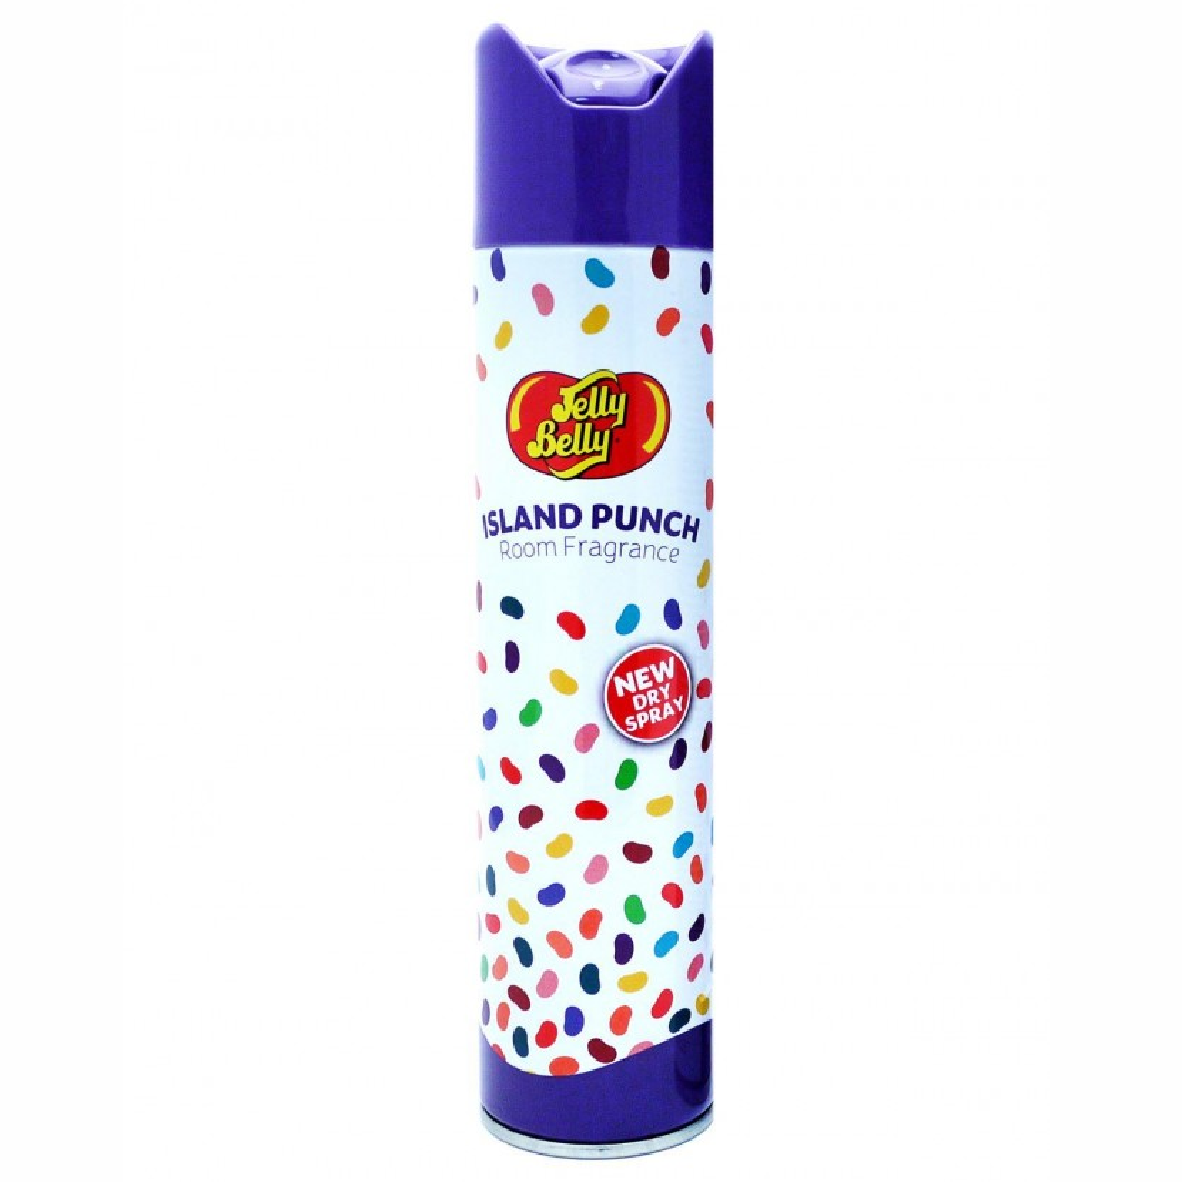 Jelly Belly Island Punch Room Fragrance 300ml  - product image